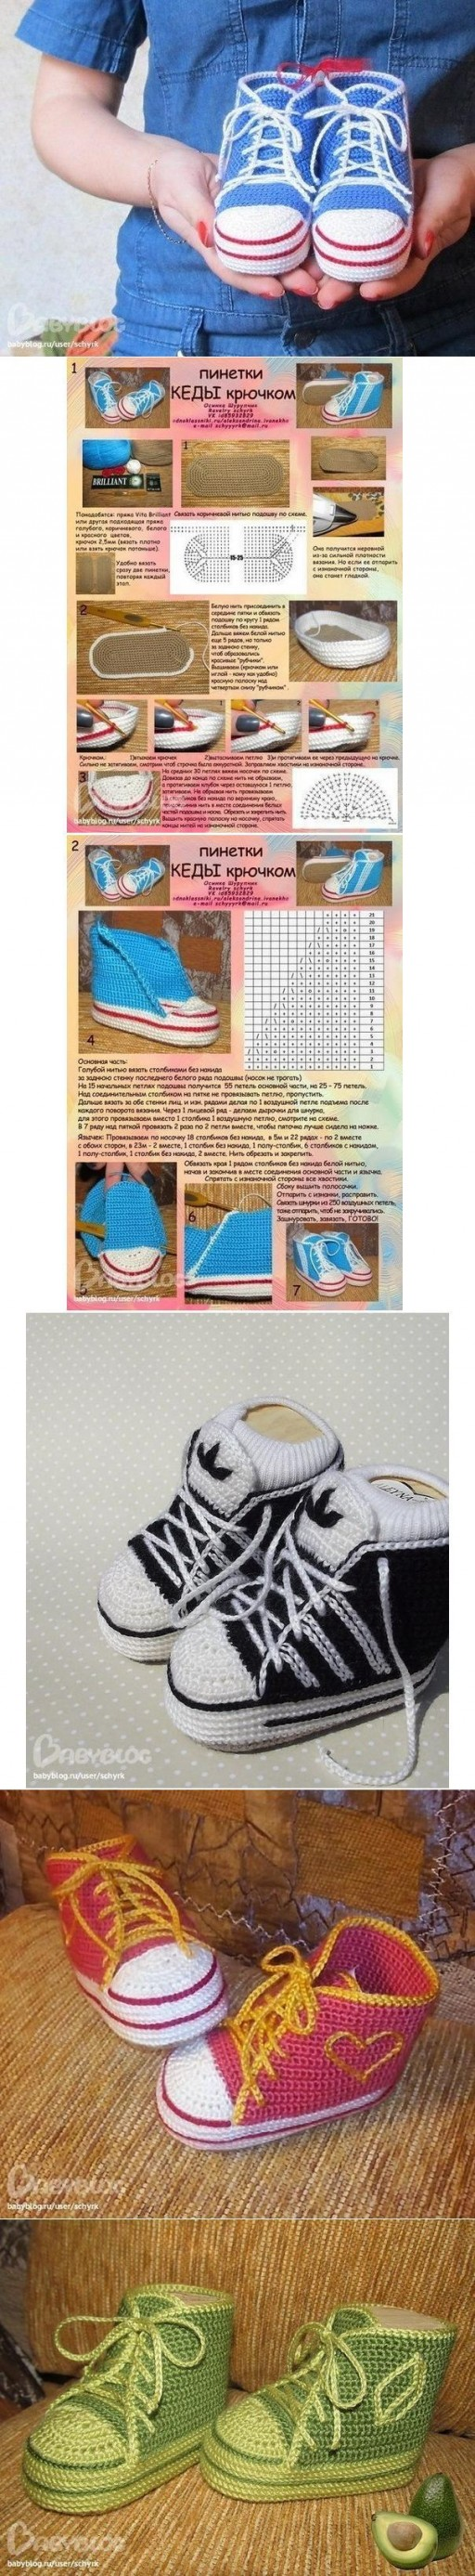 How to make Baby Booty Shoes step by step DIY tutorial instructions